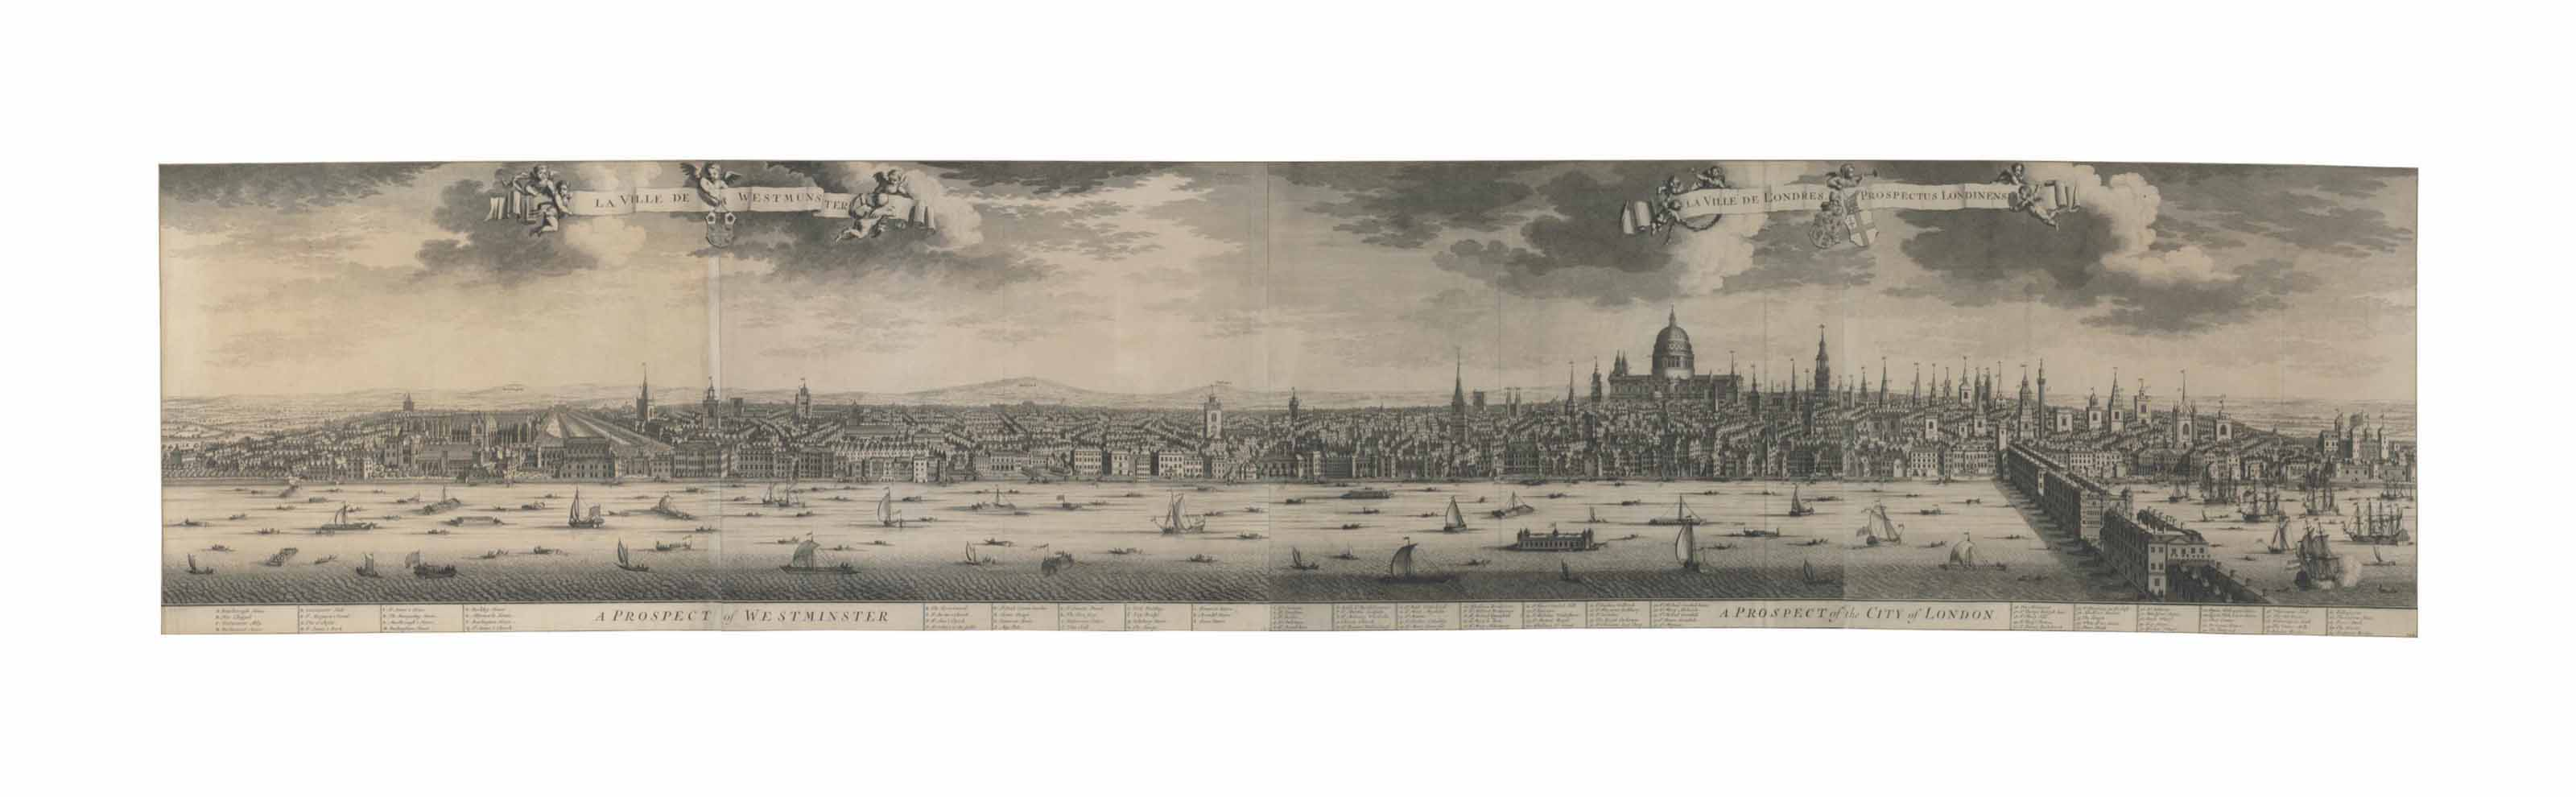 A Prospect of Westminster & A Prospect of the City of London